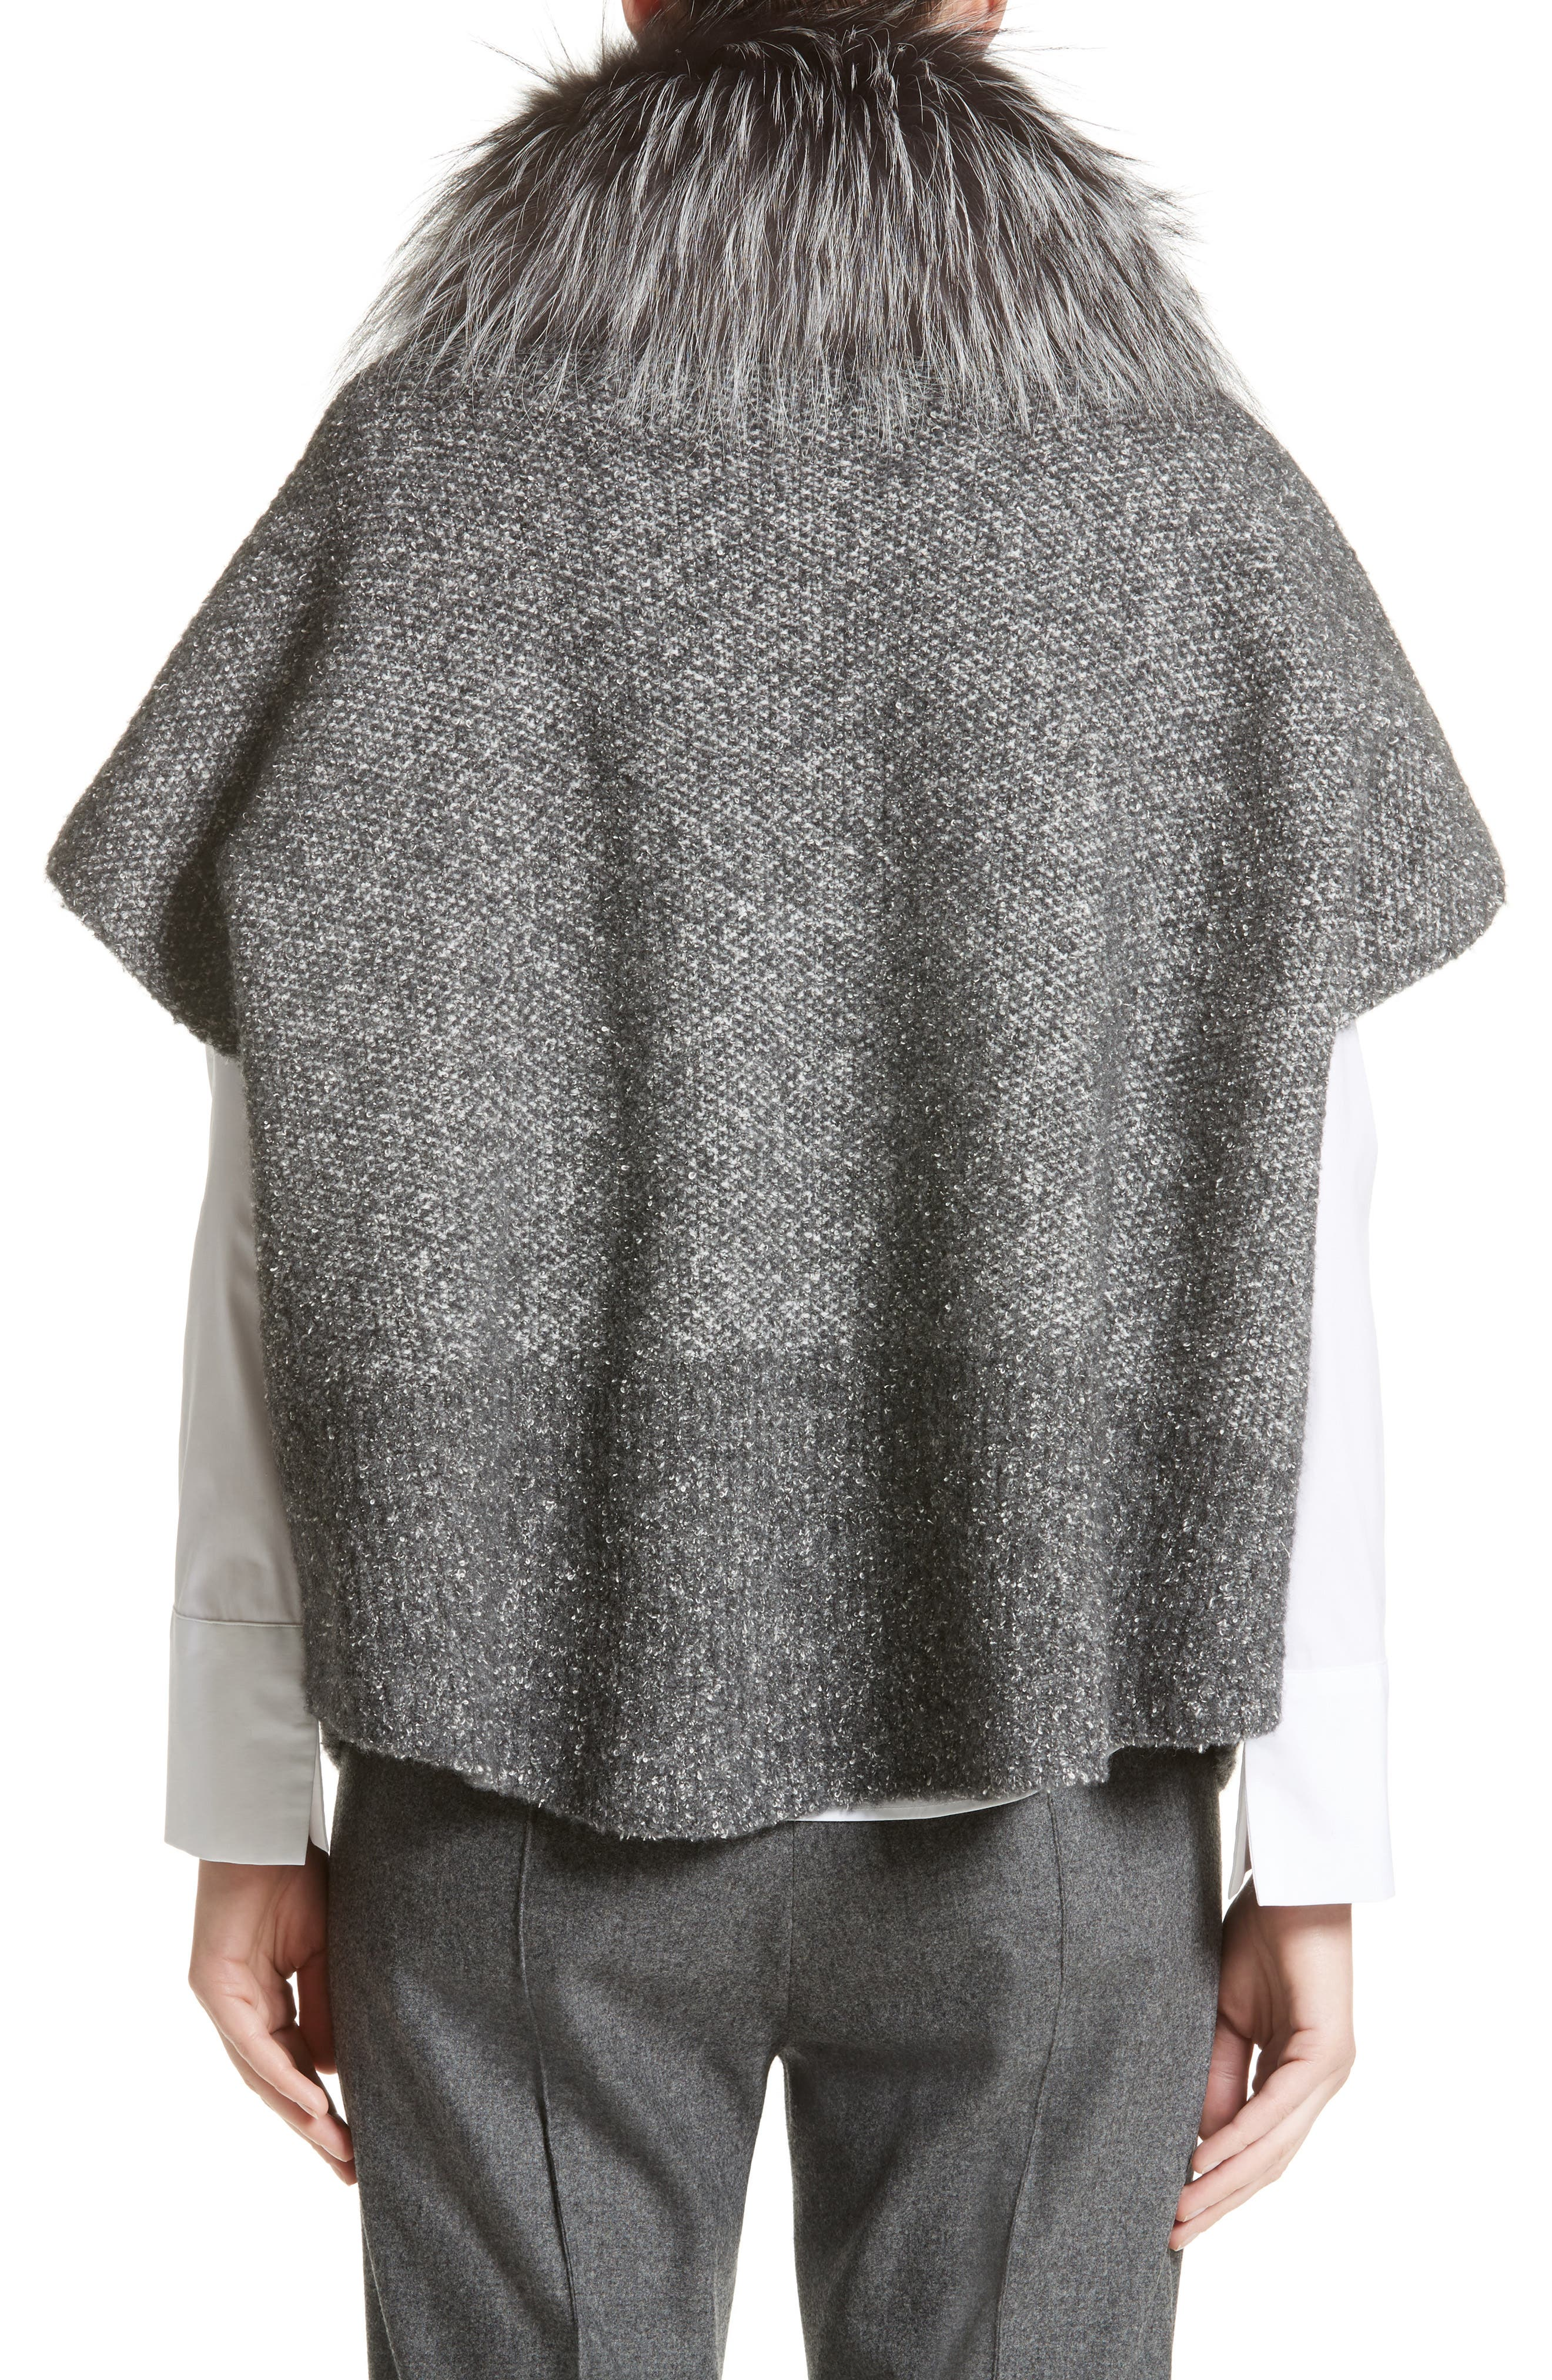 Pebble Tweed Knit Poncho with Genuine Fox Fur Collar,                             Alternate thumbnail 2, color,                             021